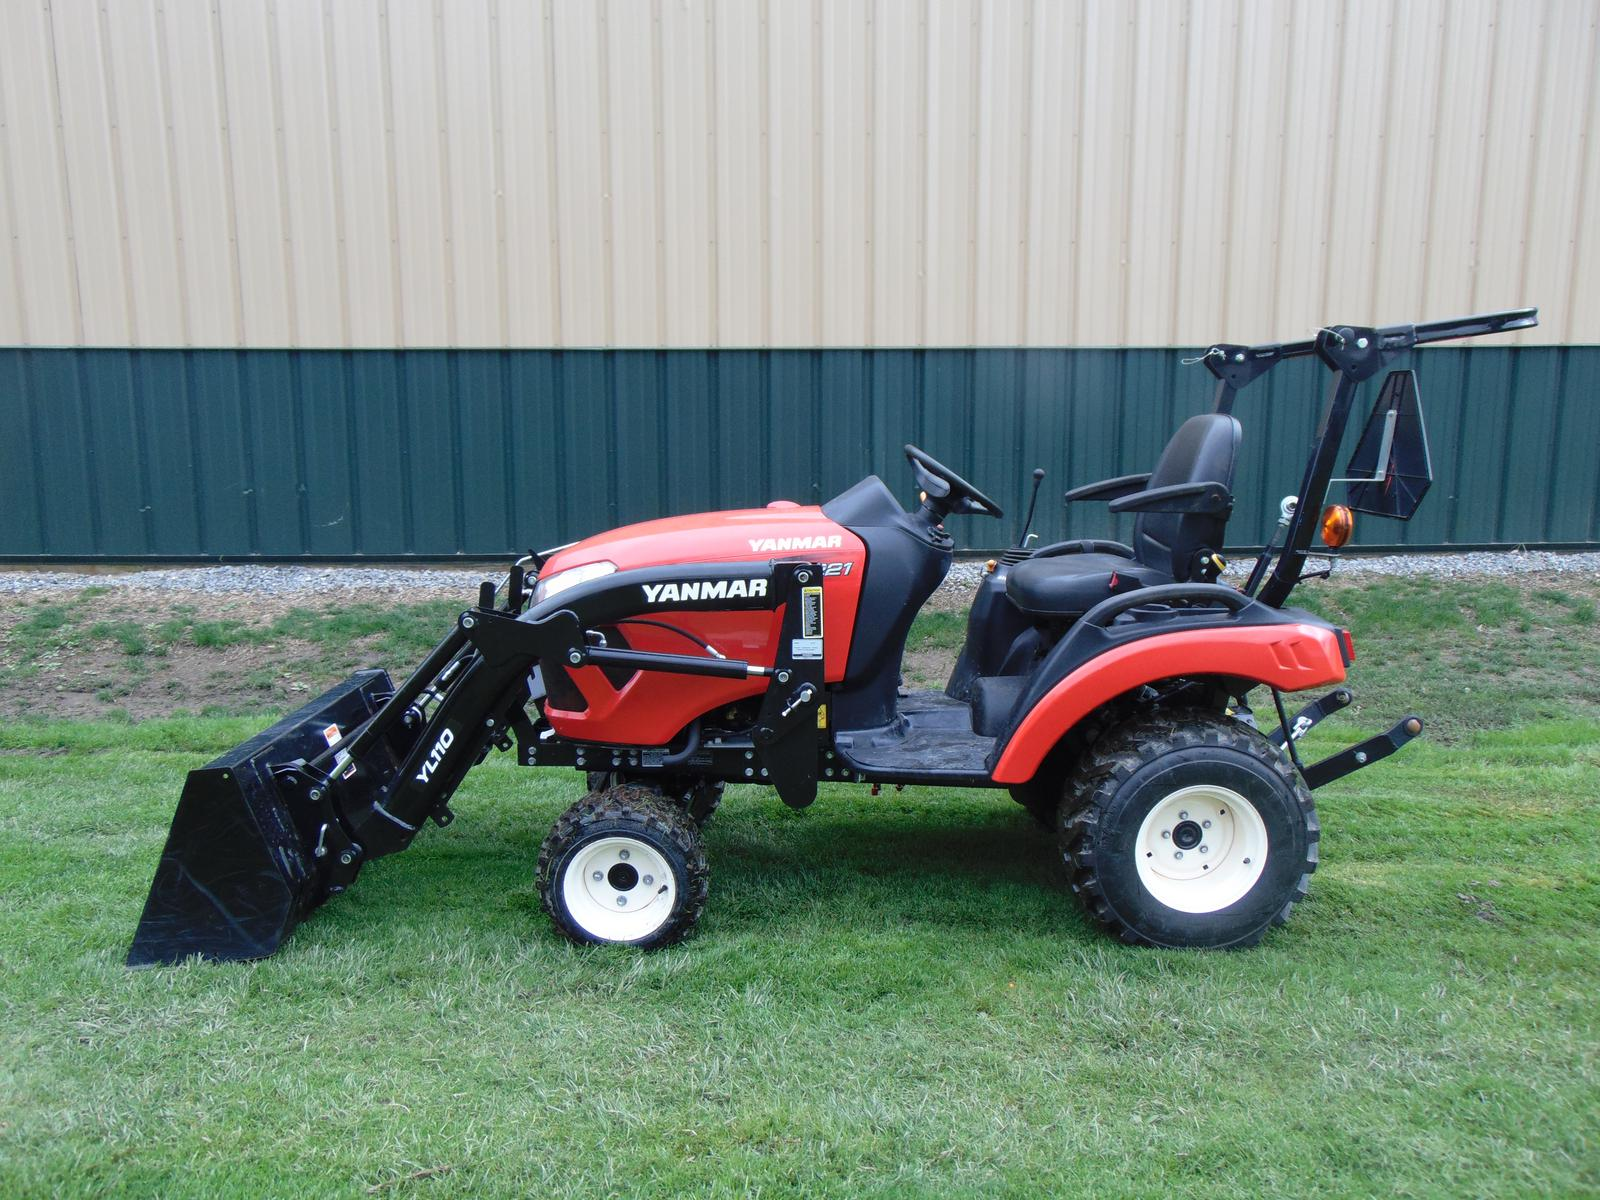 Inventory from Yanmar USA and Yard-Man Martin's Outdoor